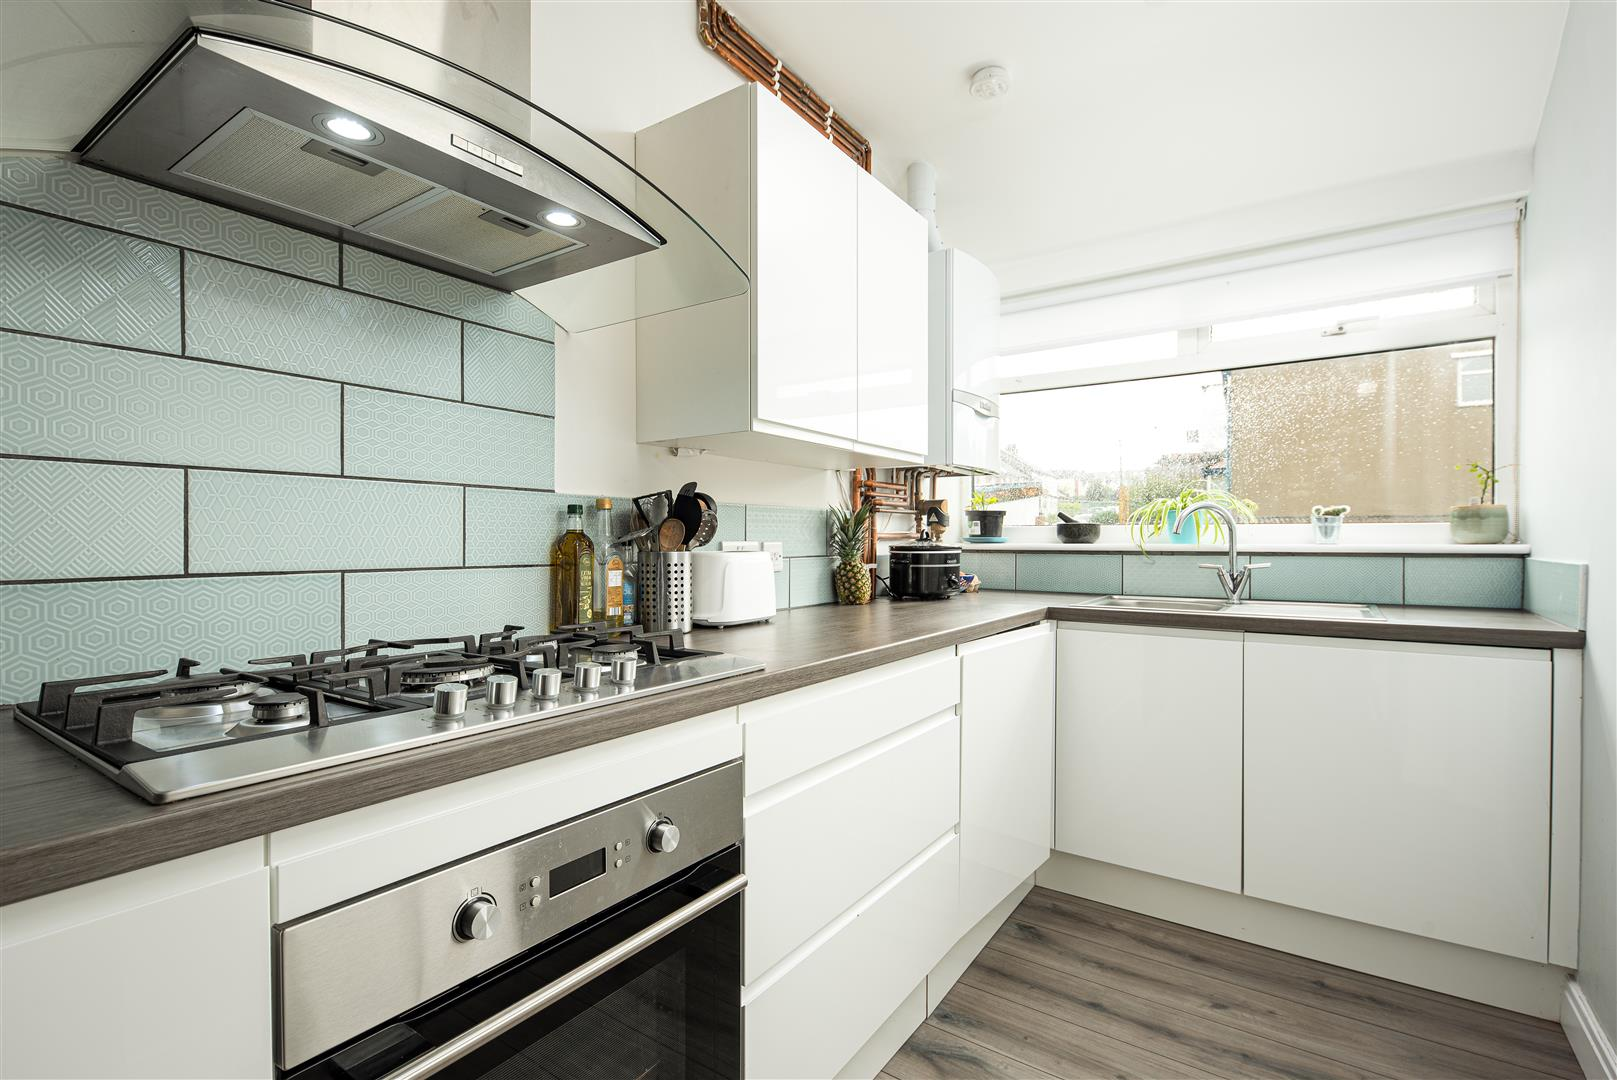 4 bed house to rent in Keys Avenue, Bristol 2